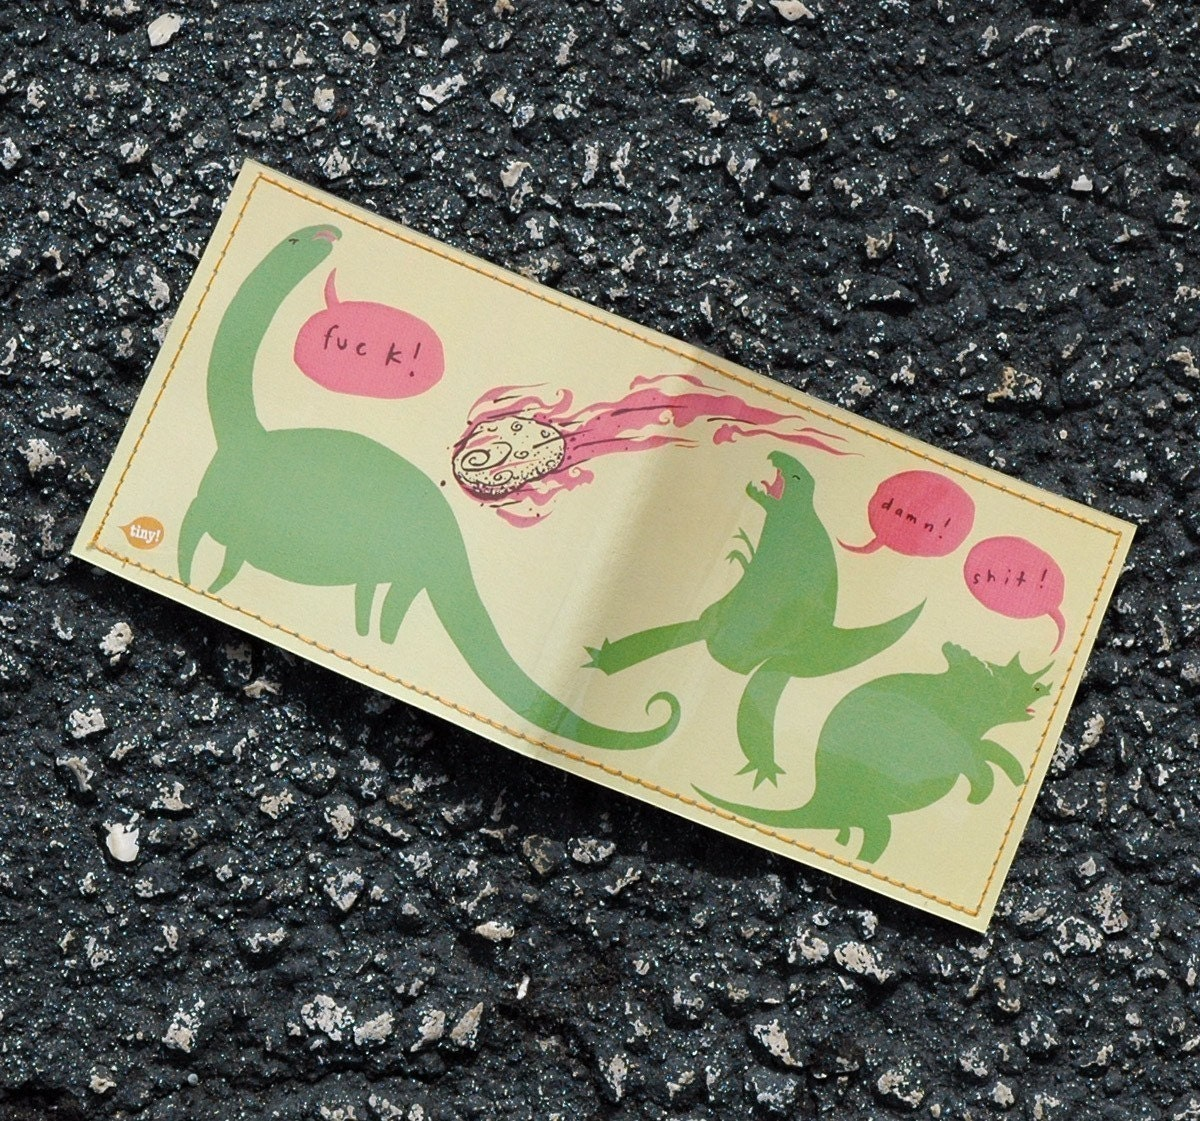 Dinoclasm Wallet - Mikeatron for Tinymeat